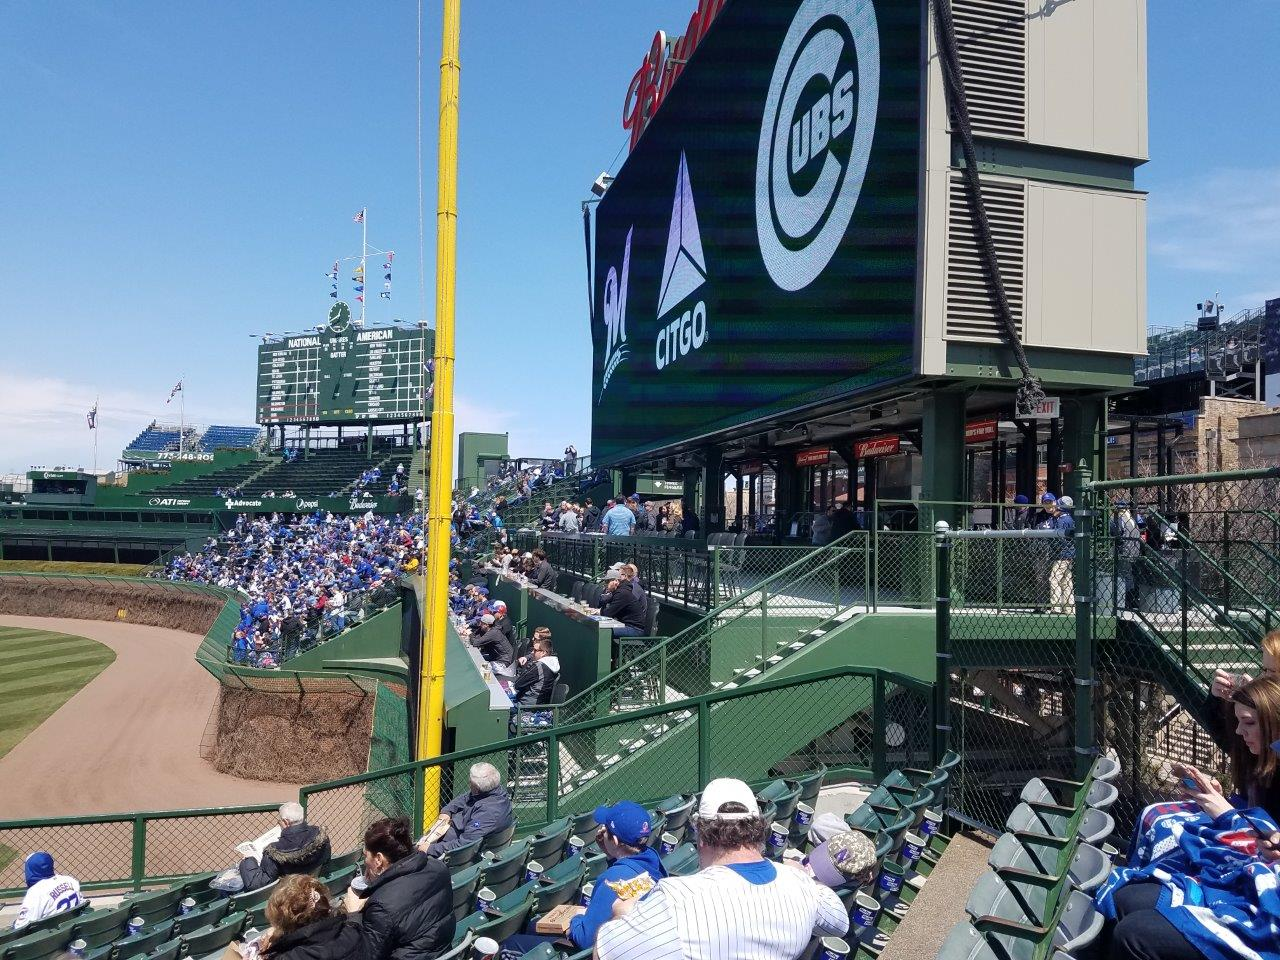 wrigley field seating for cubs games